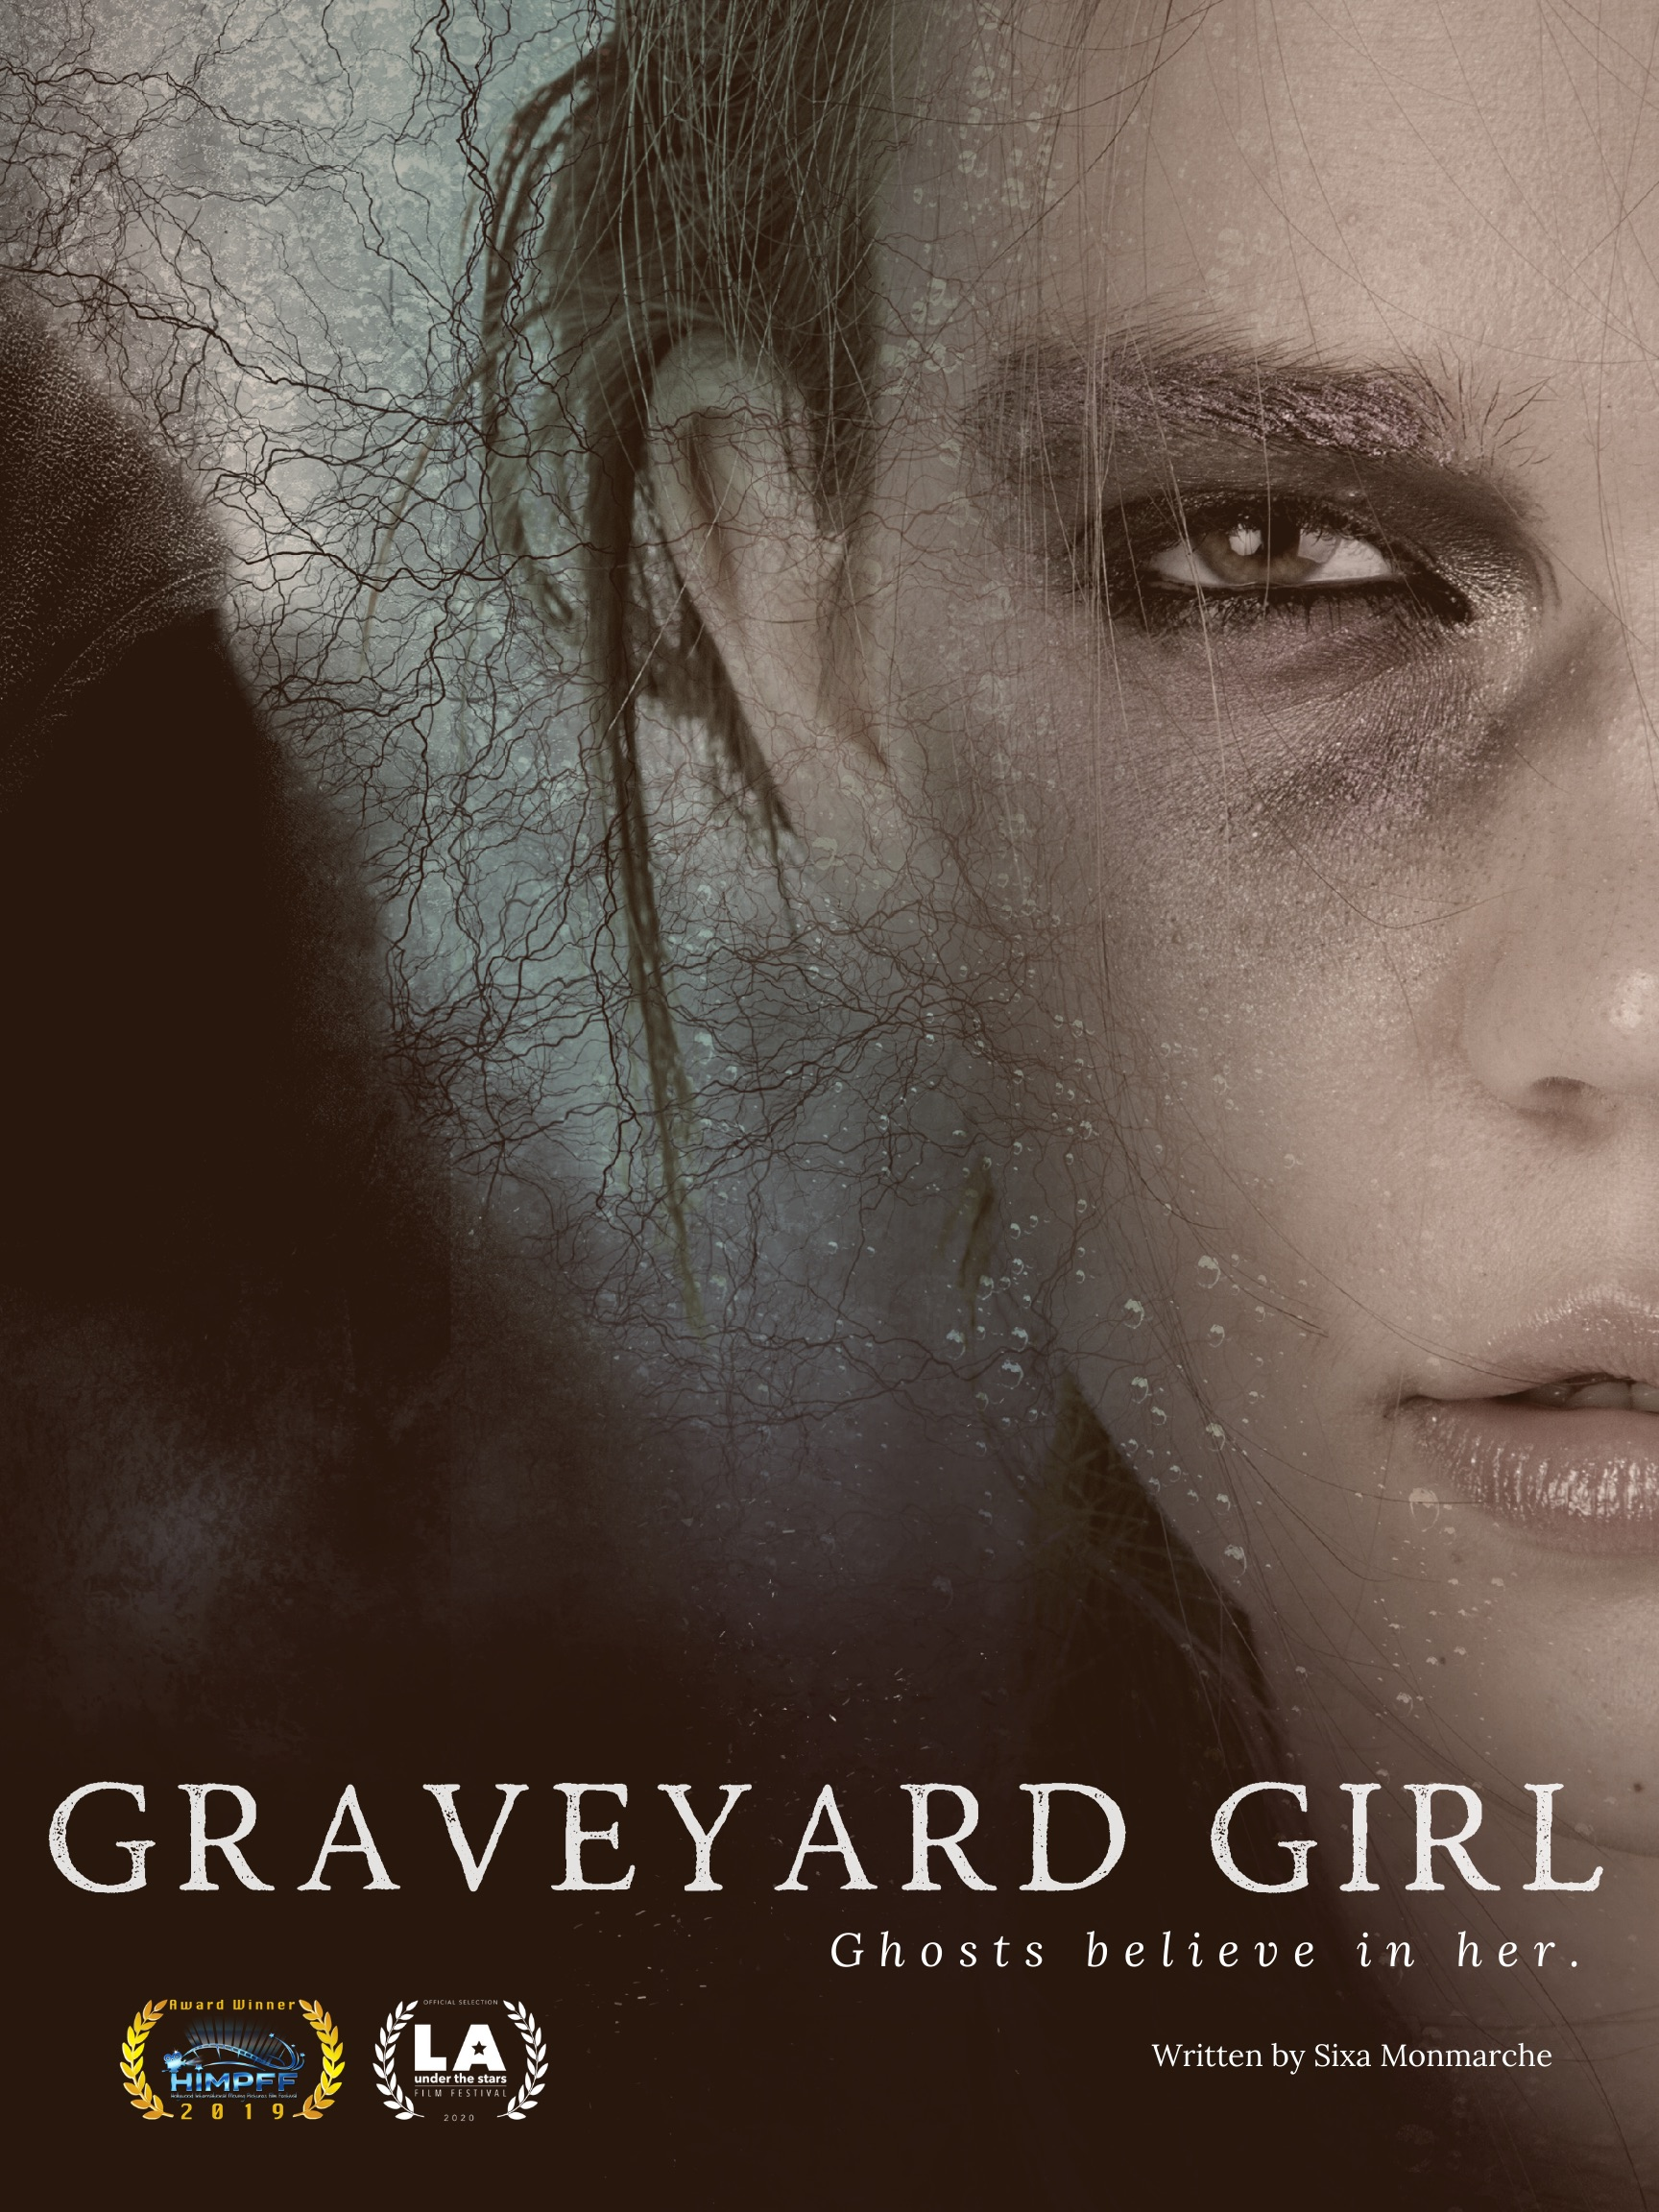 graveyard girl-poster_with_laurels